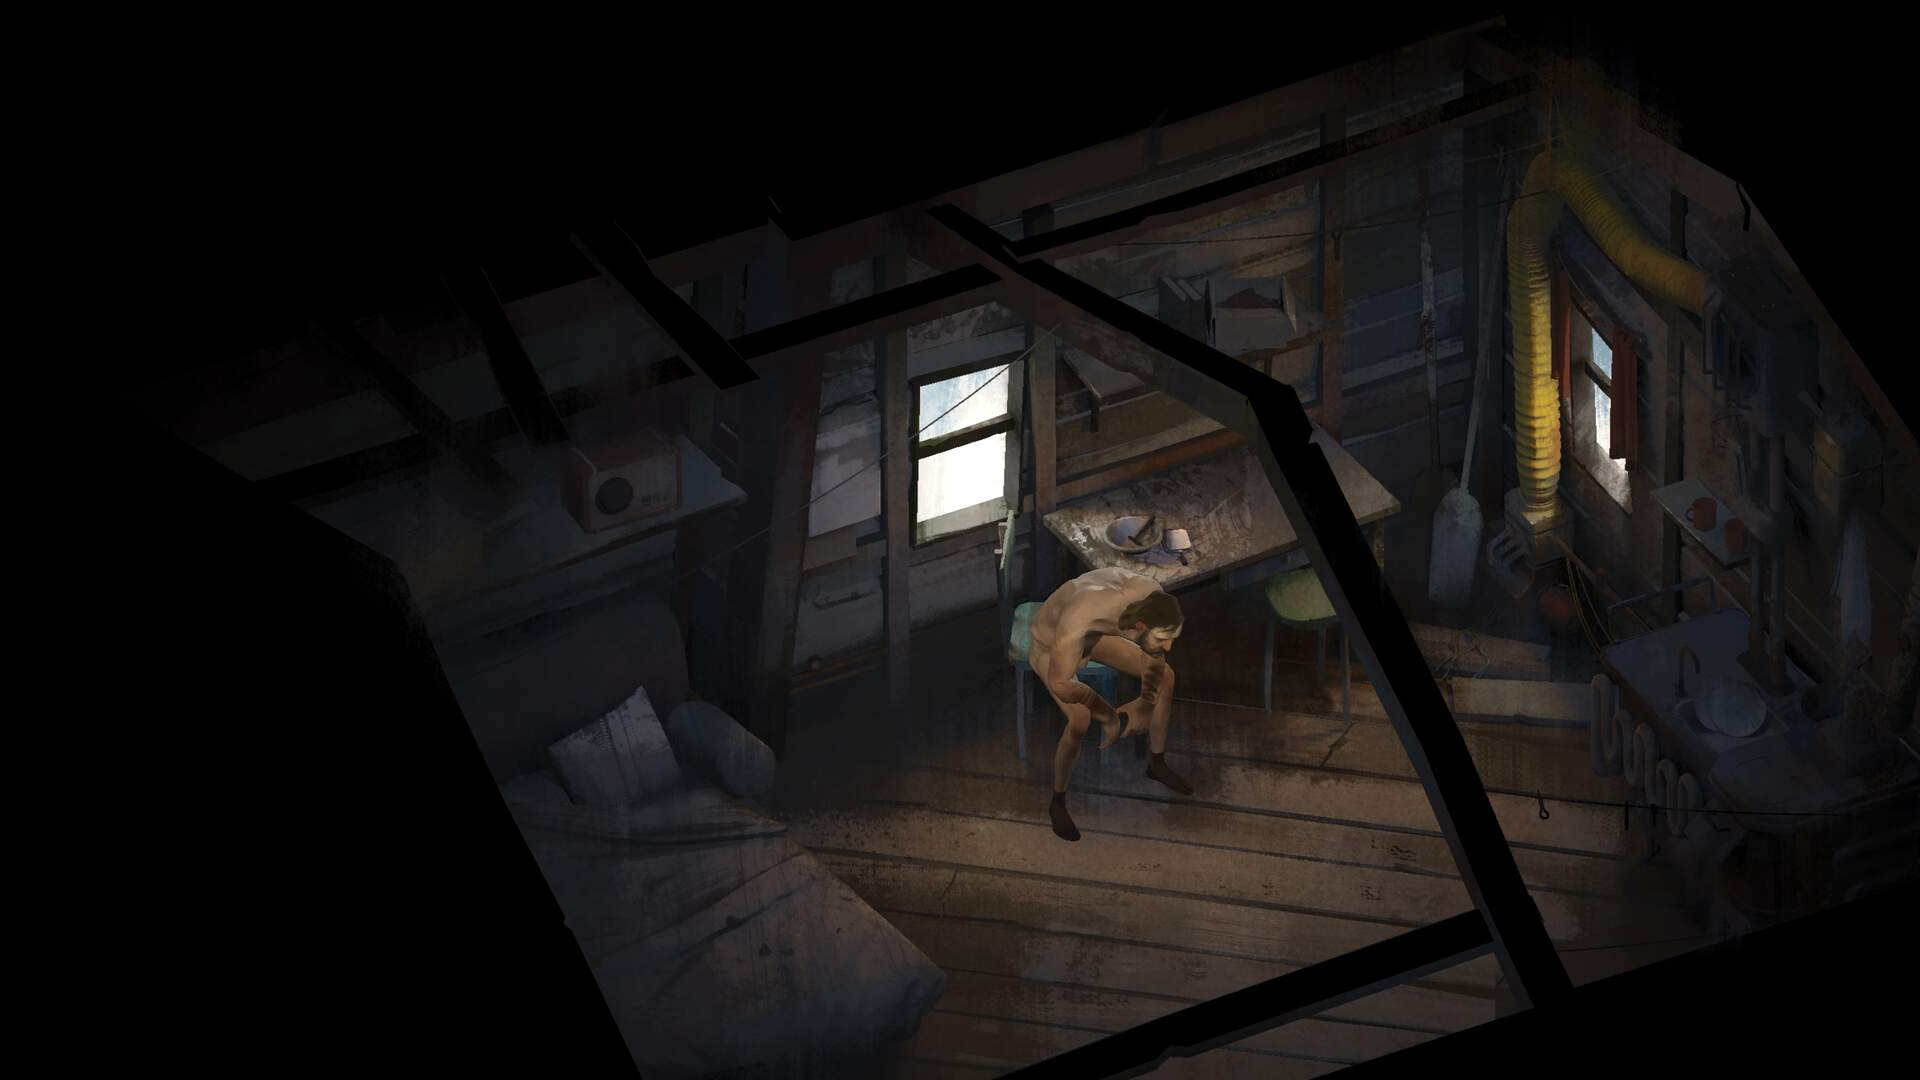 Disco Elysium: Where to Sleep On the First Night and How to Sleep for Free